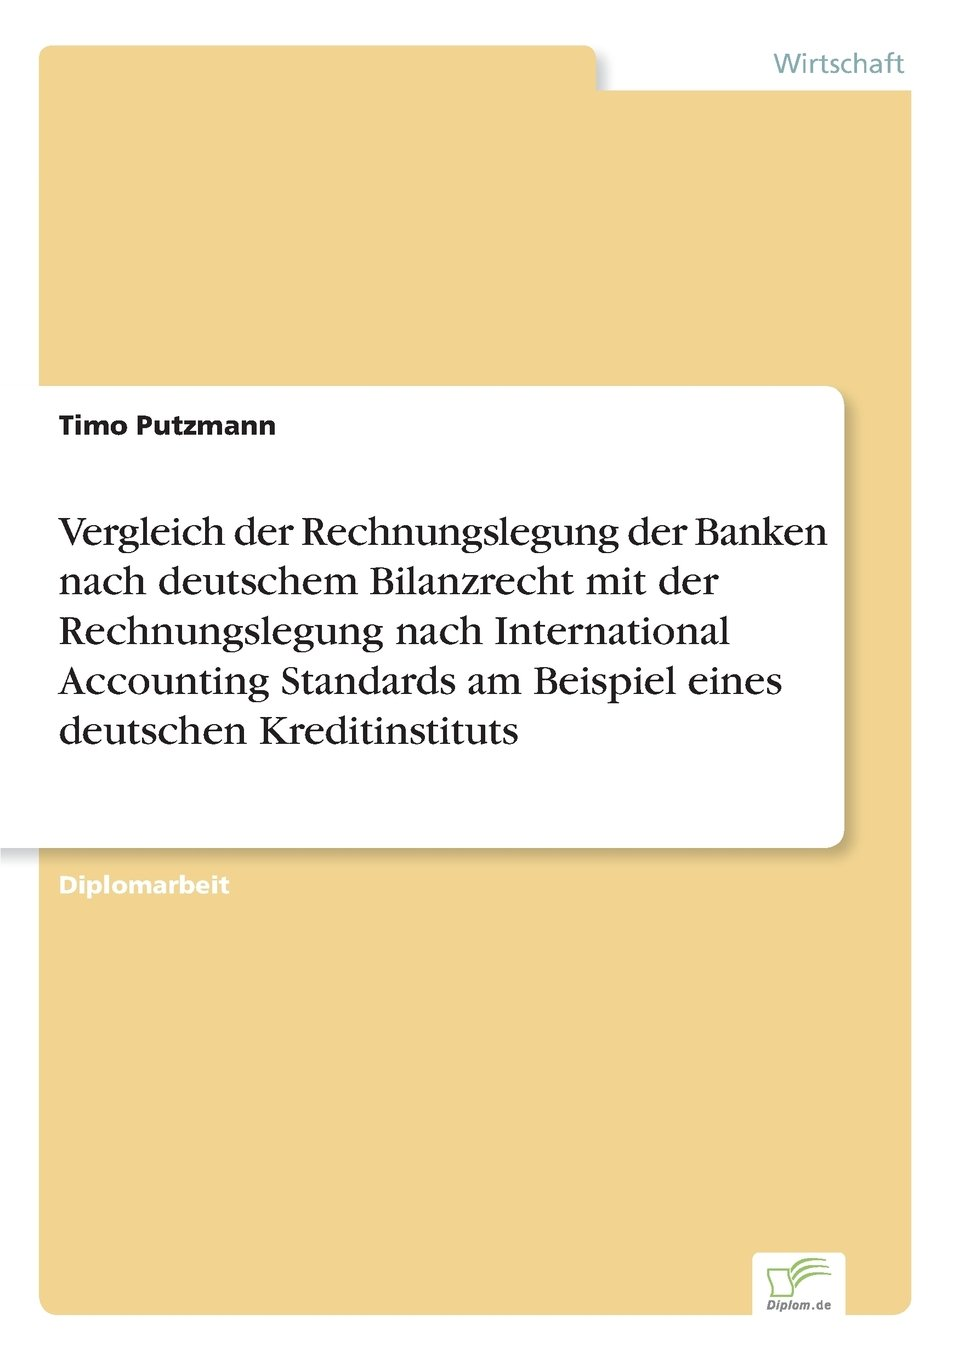 Vergleich der Rechnungslegung der Banken nach deutschem Bilanzrecht mit der Rechnungslegung nach International Accounting Standards am Beispiel eines deutschen Kreditinstituts (German Edition)